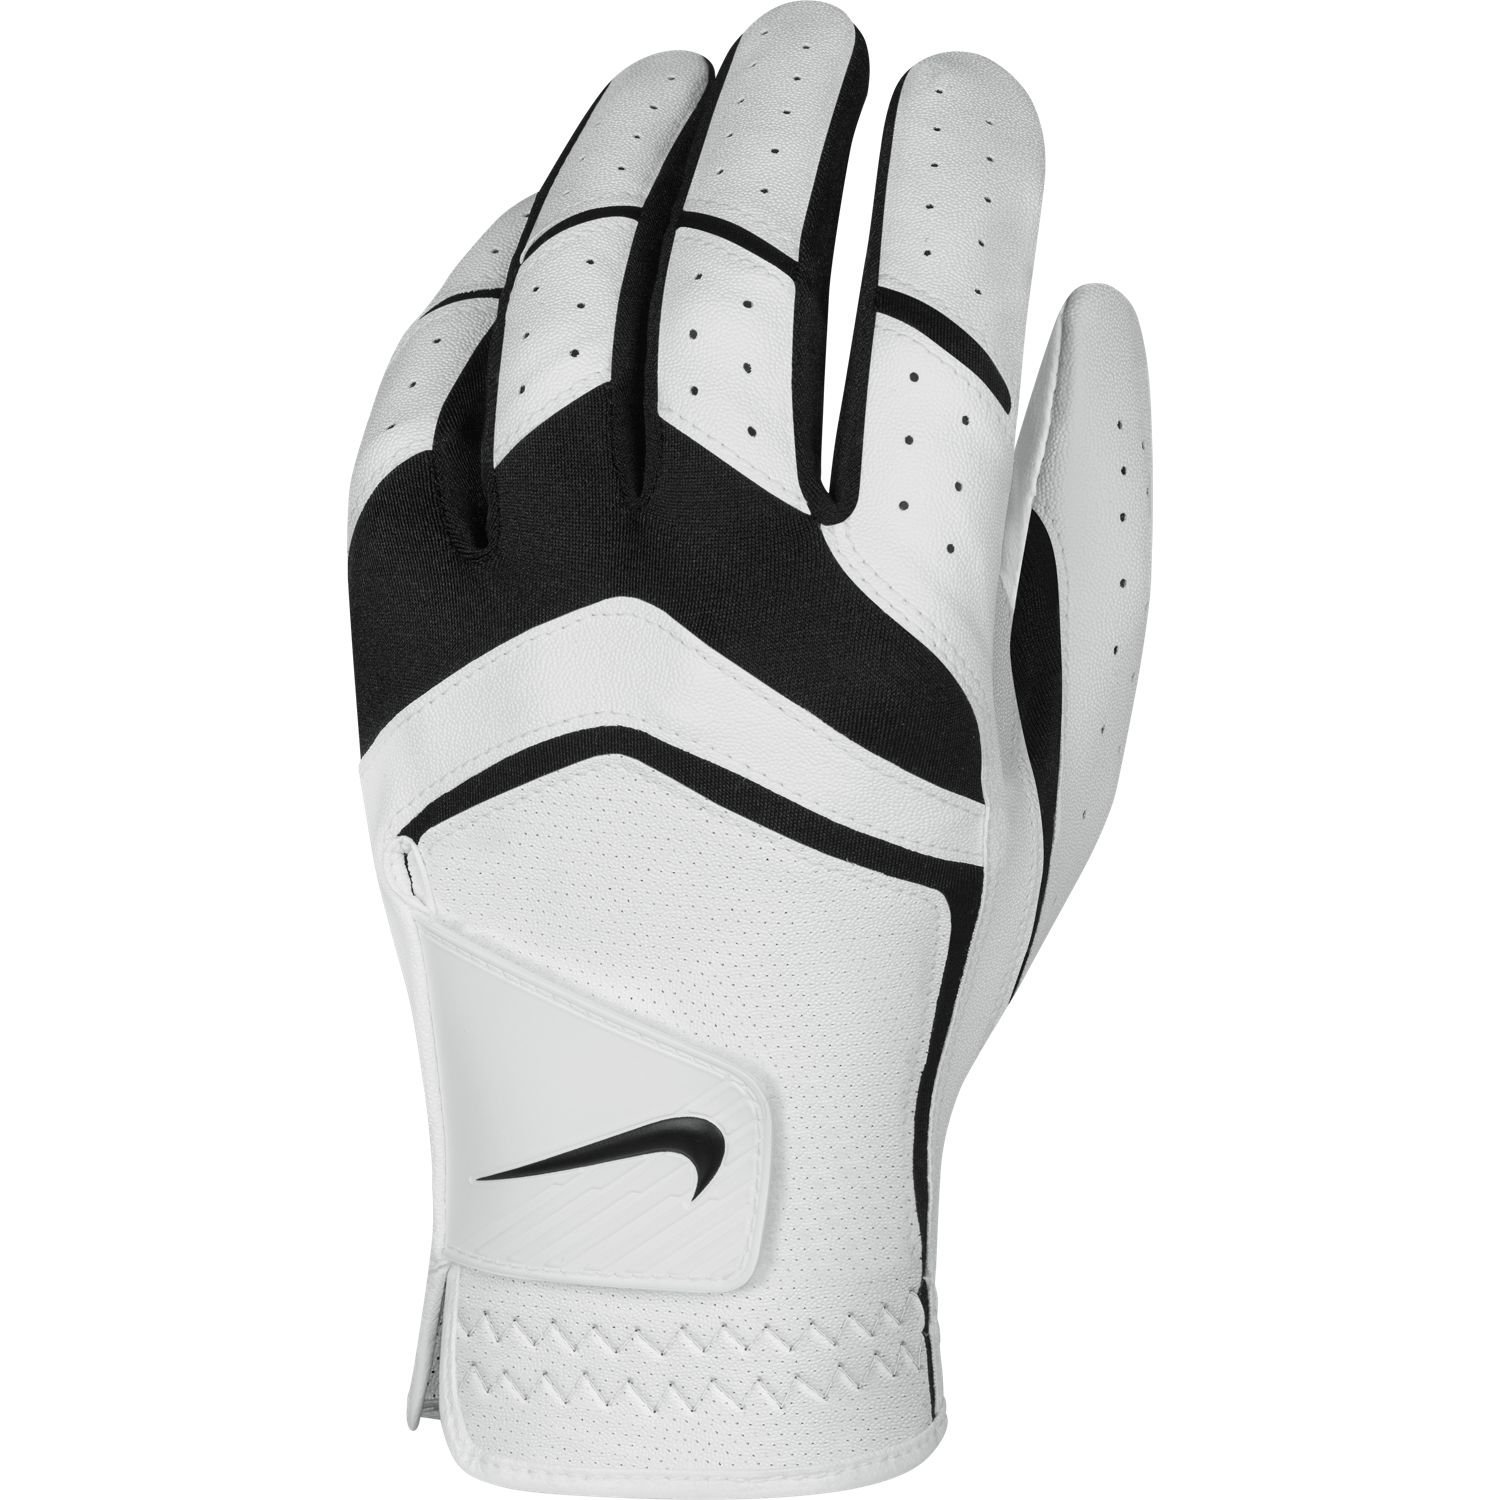 Nike Dura Feel VIII All Weather Golf Gloves Review